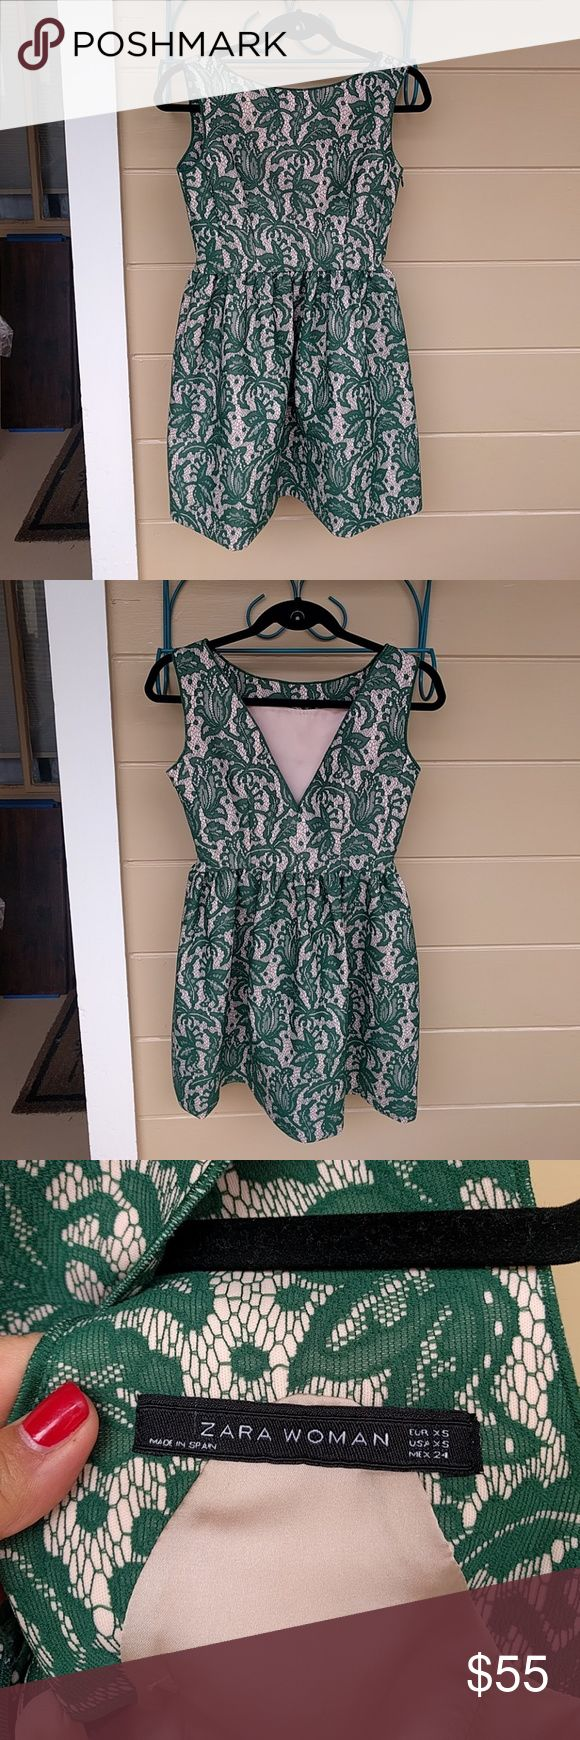 Zara Green tea dress Textured green lace-like design over beige background.  Side zipper. Fully lined. Excellent condition. Zara Dresses Mini